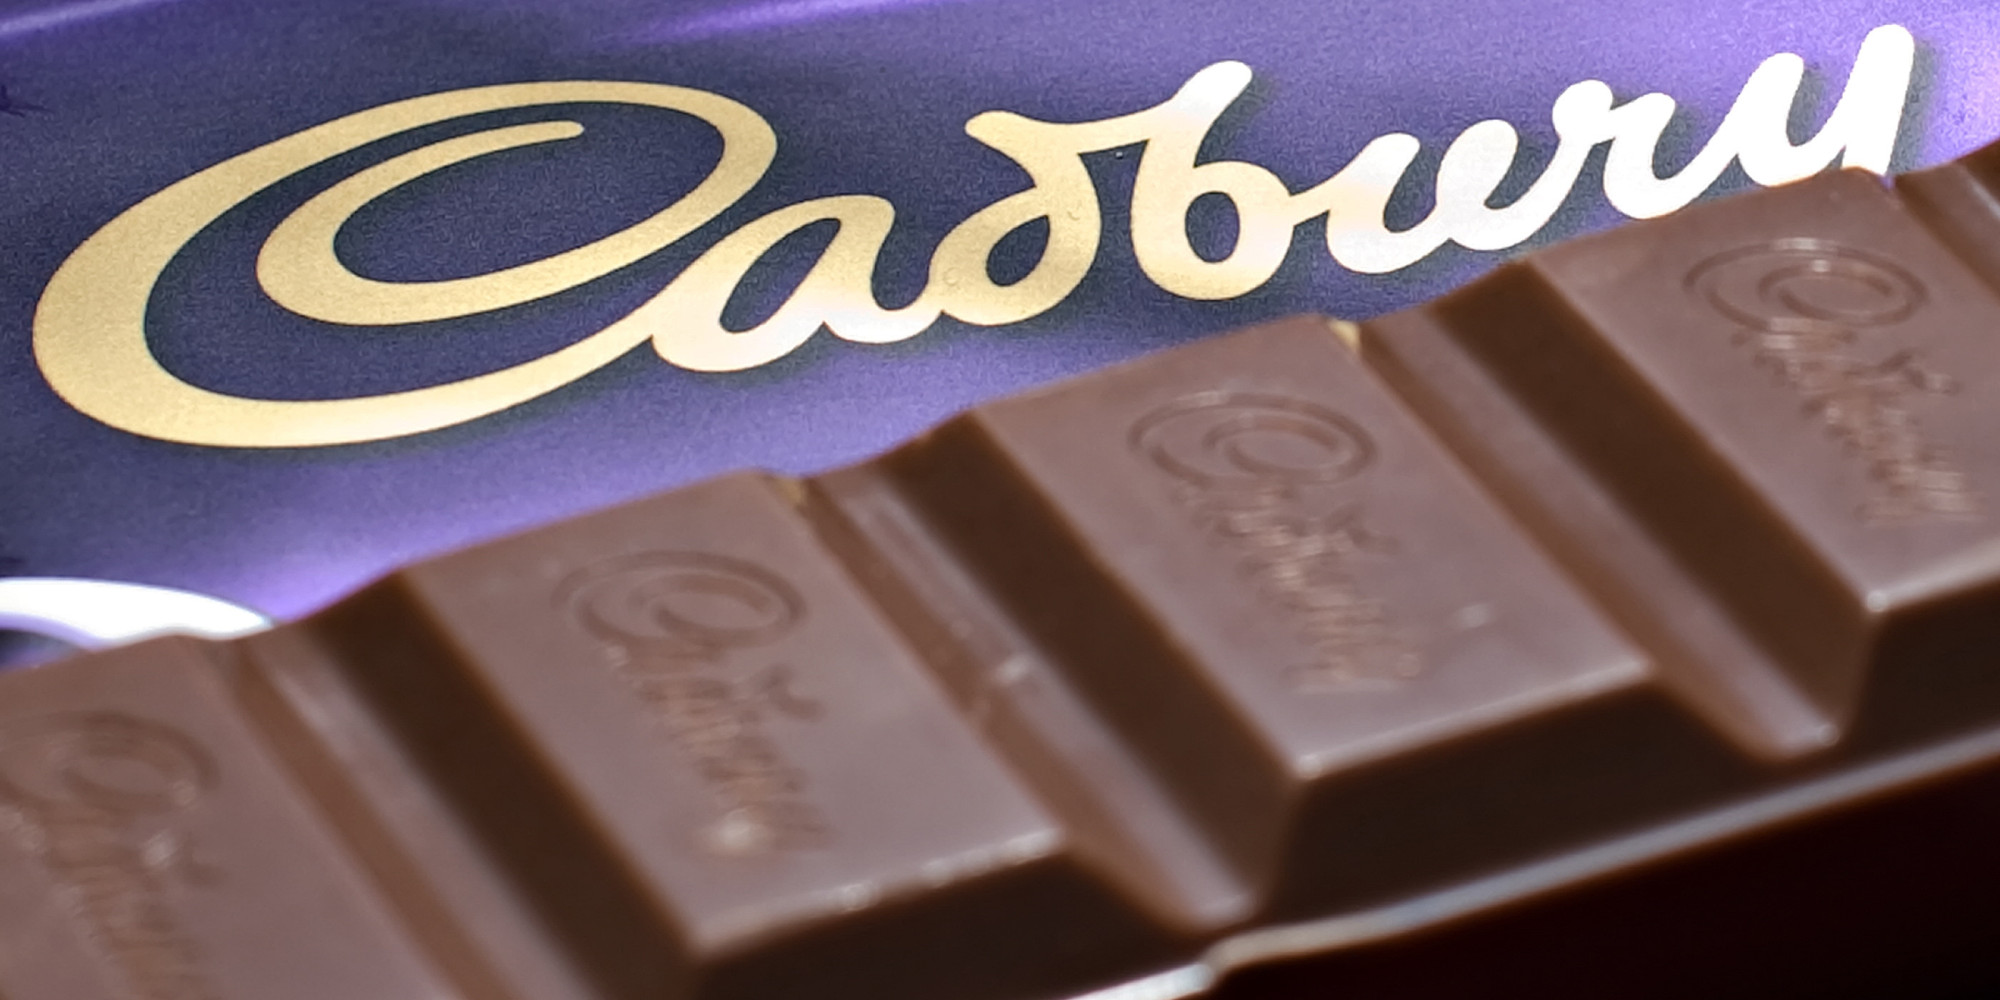 macro environment cadbury chocolate Despite the claim of a false online story, cadbury easter creme eggs and other chocolate treats are still being made.